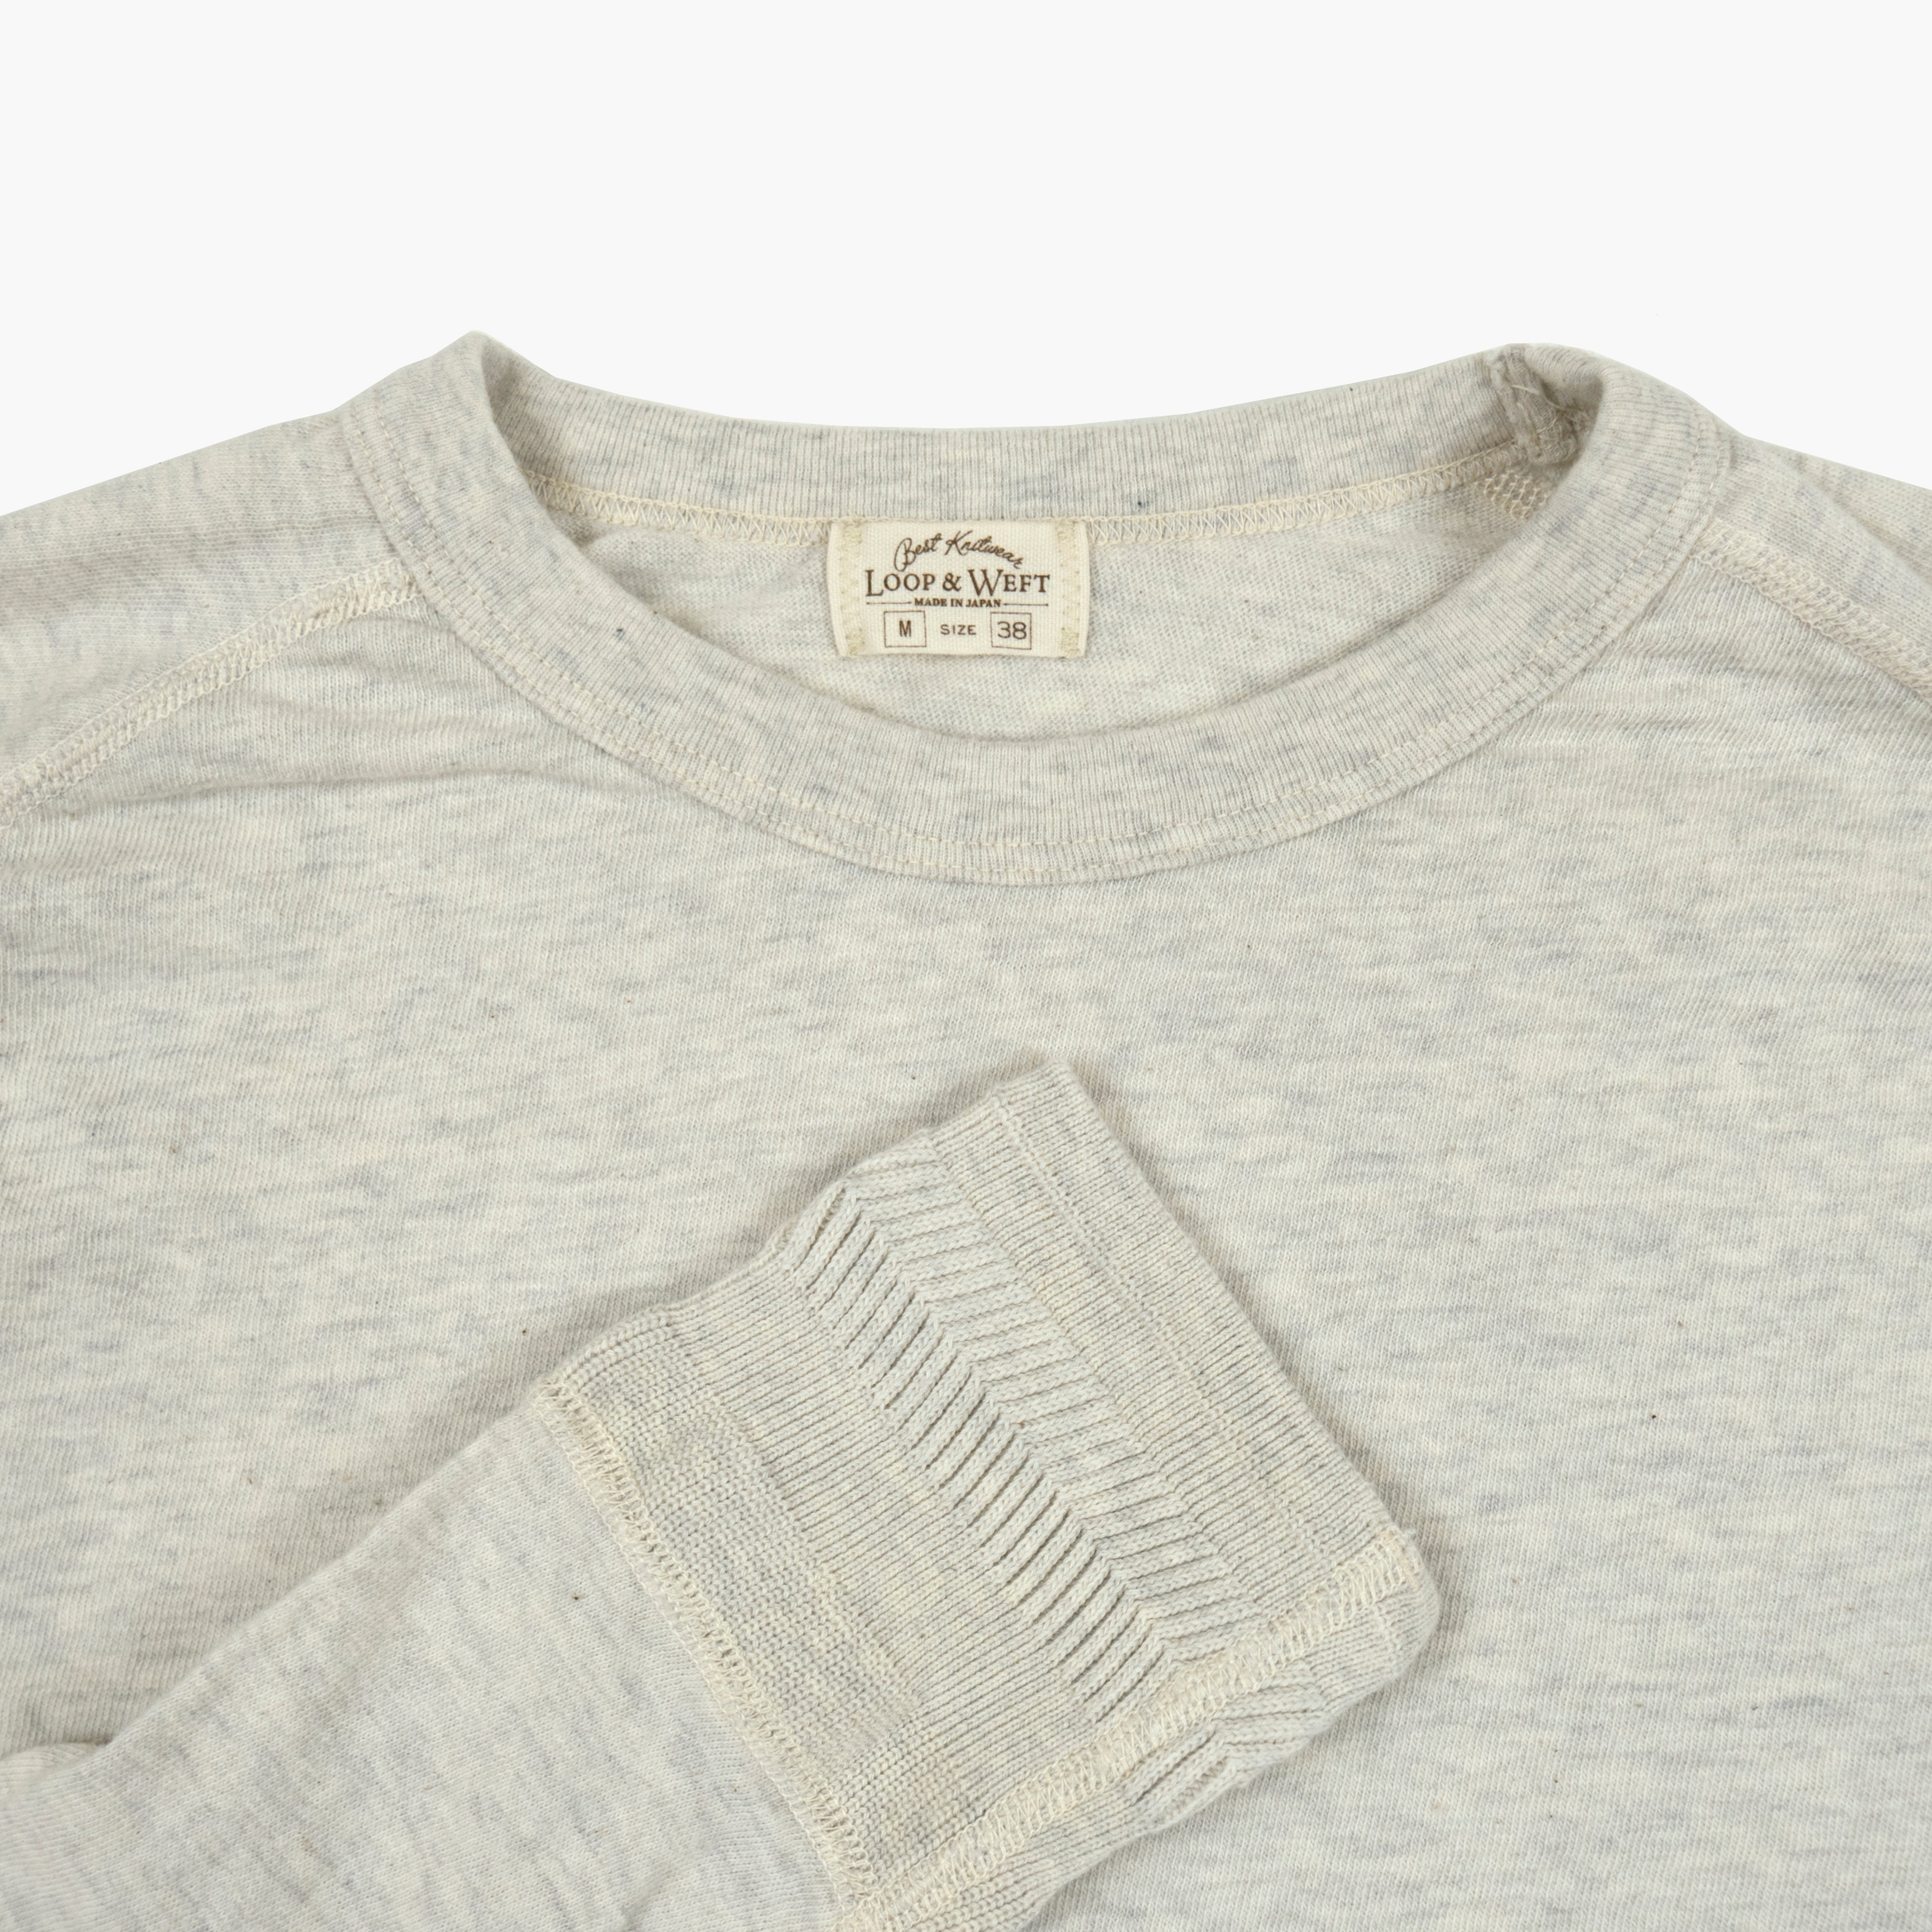 San Joaquin Cotton Raglan Crewneck in Oatmeal